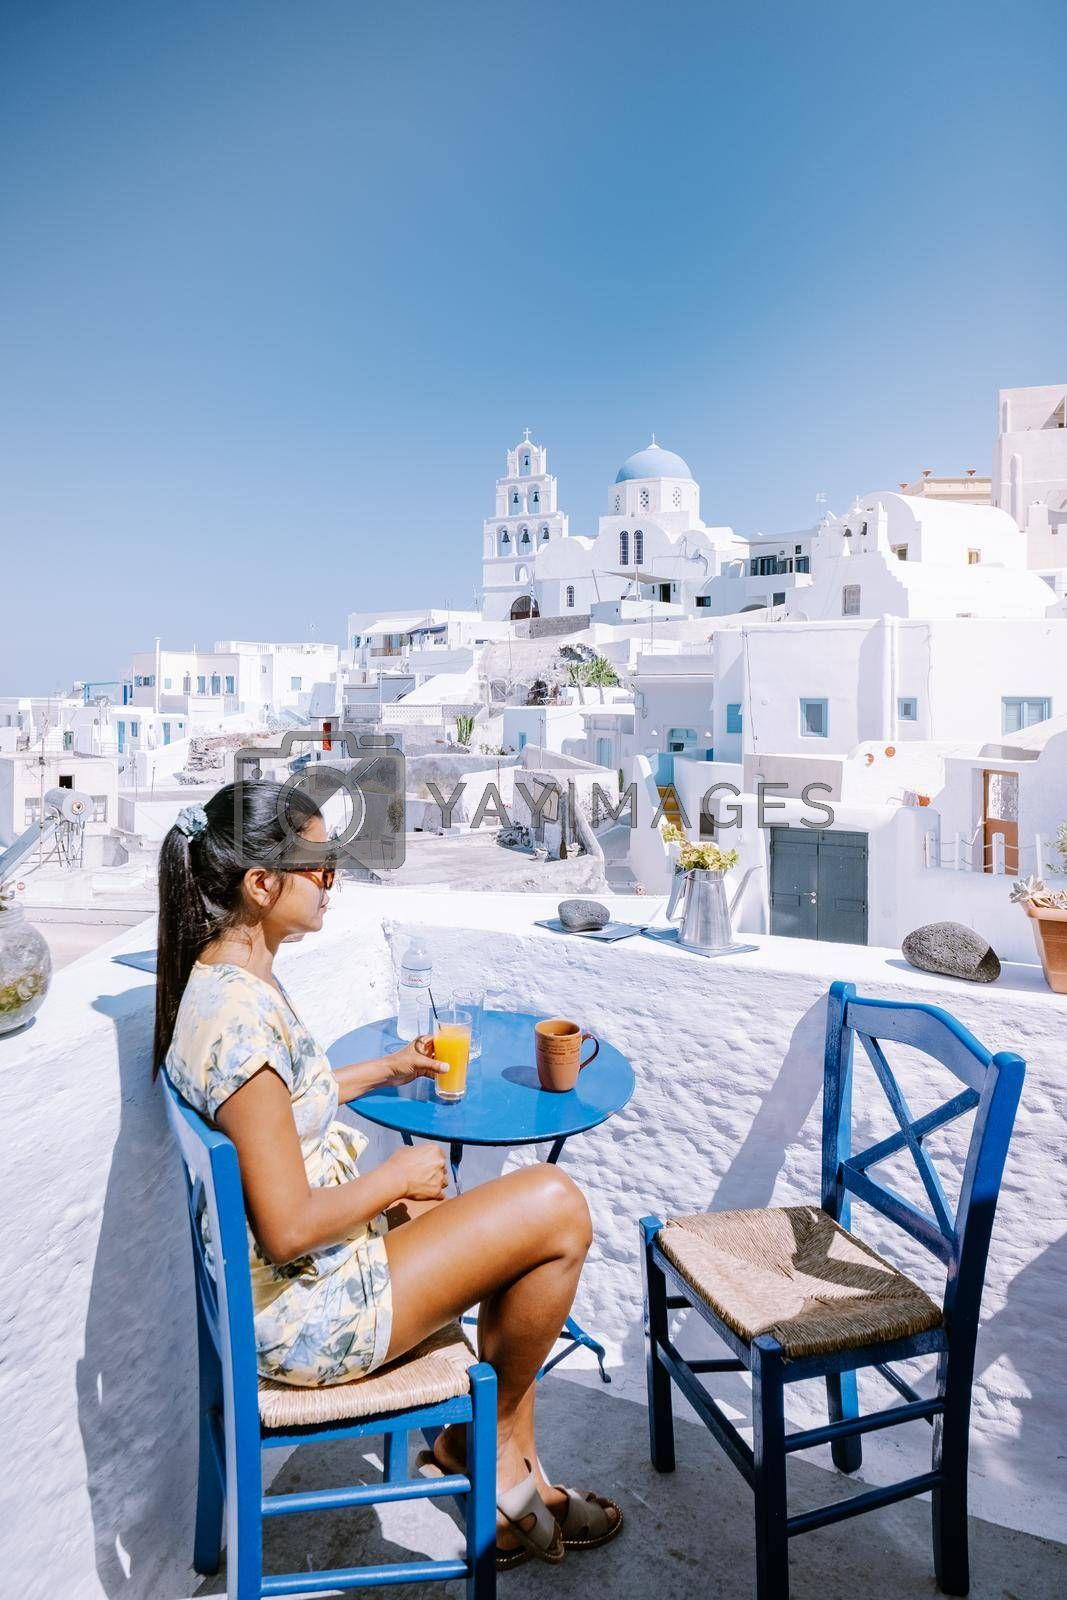 Royalty free image of Santorini Greece, young woman on luxury vacation at the Island of Santorini watching sunrise by the blue dome church and whitewashed village of Oia Santorini Greece during sunrise, men and woman on holiday in Greece by fokkebok